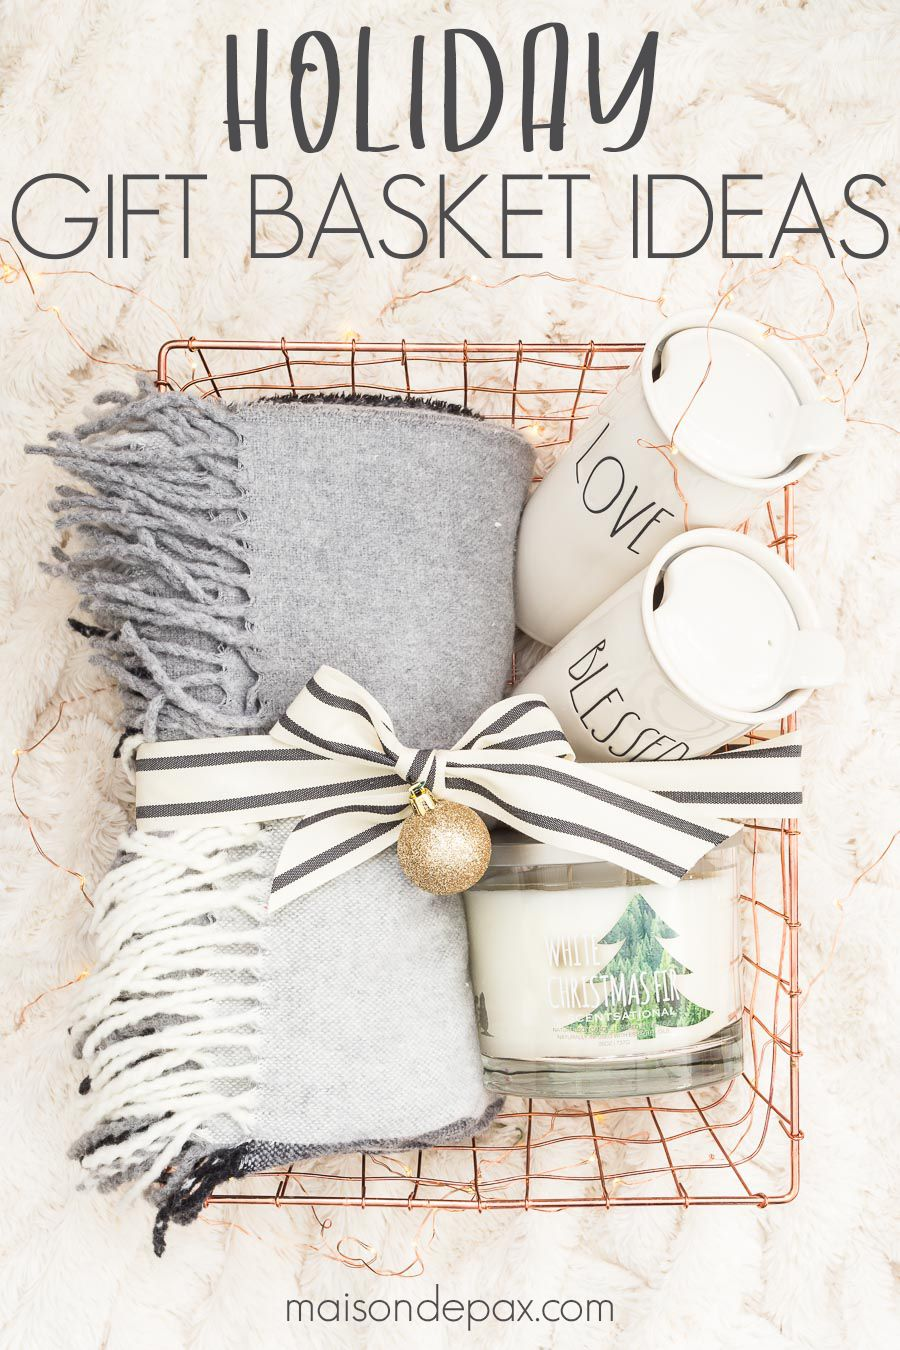 Easy Gift Basket Ideas For The Holidays Maison De Pax Creative Diy Gifts Homemade Christmas Gifts Easy Gift Baskets